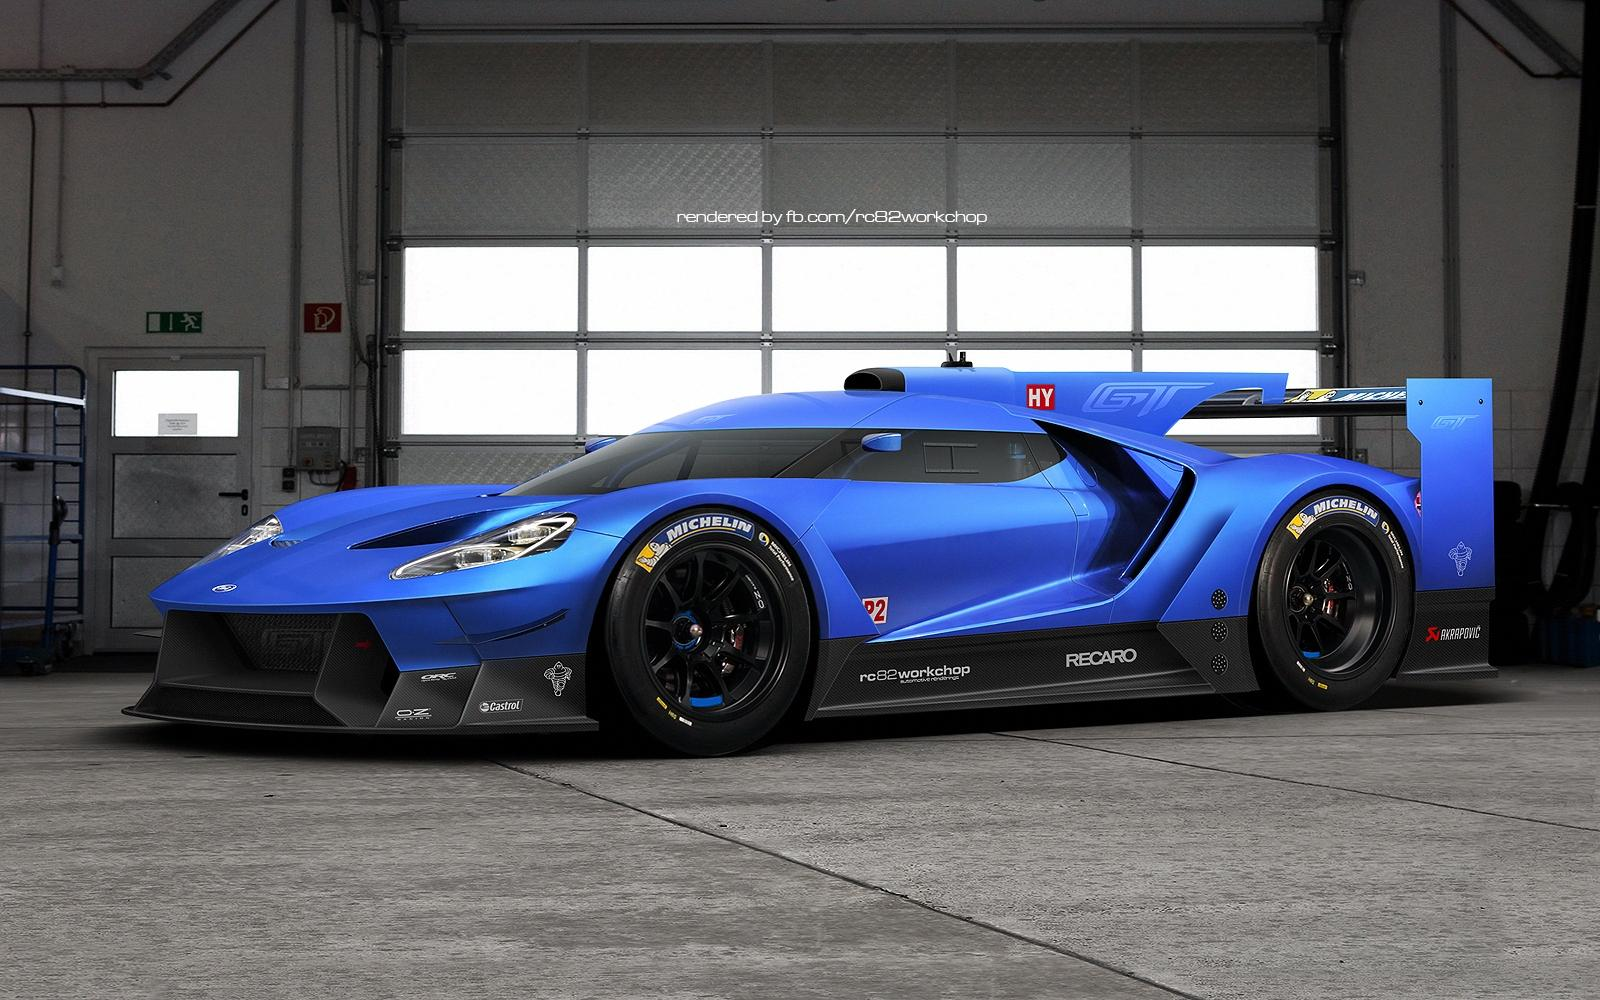 ford gt rendering could preview future le mans car. Black Bedroom Furniture Sets. Home Design Ideas